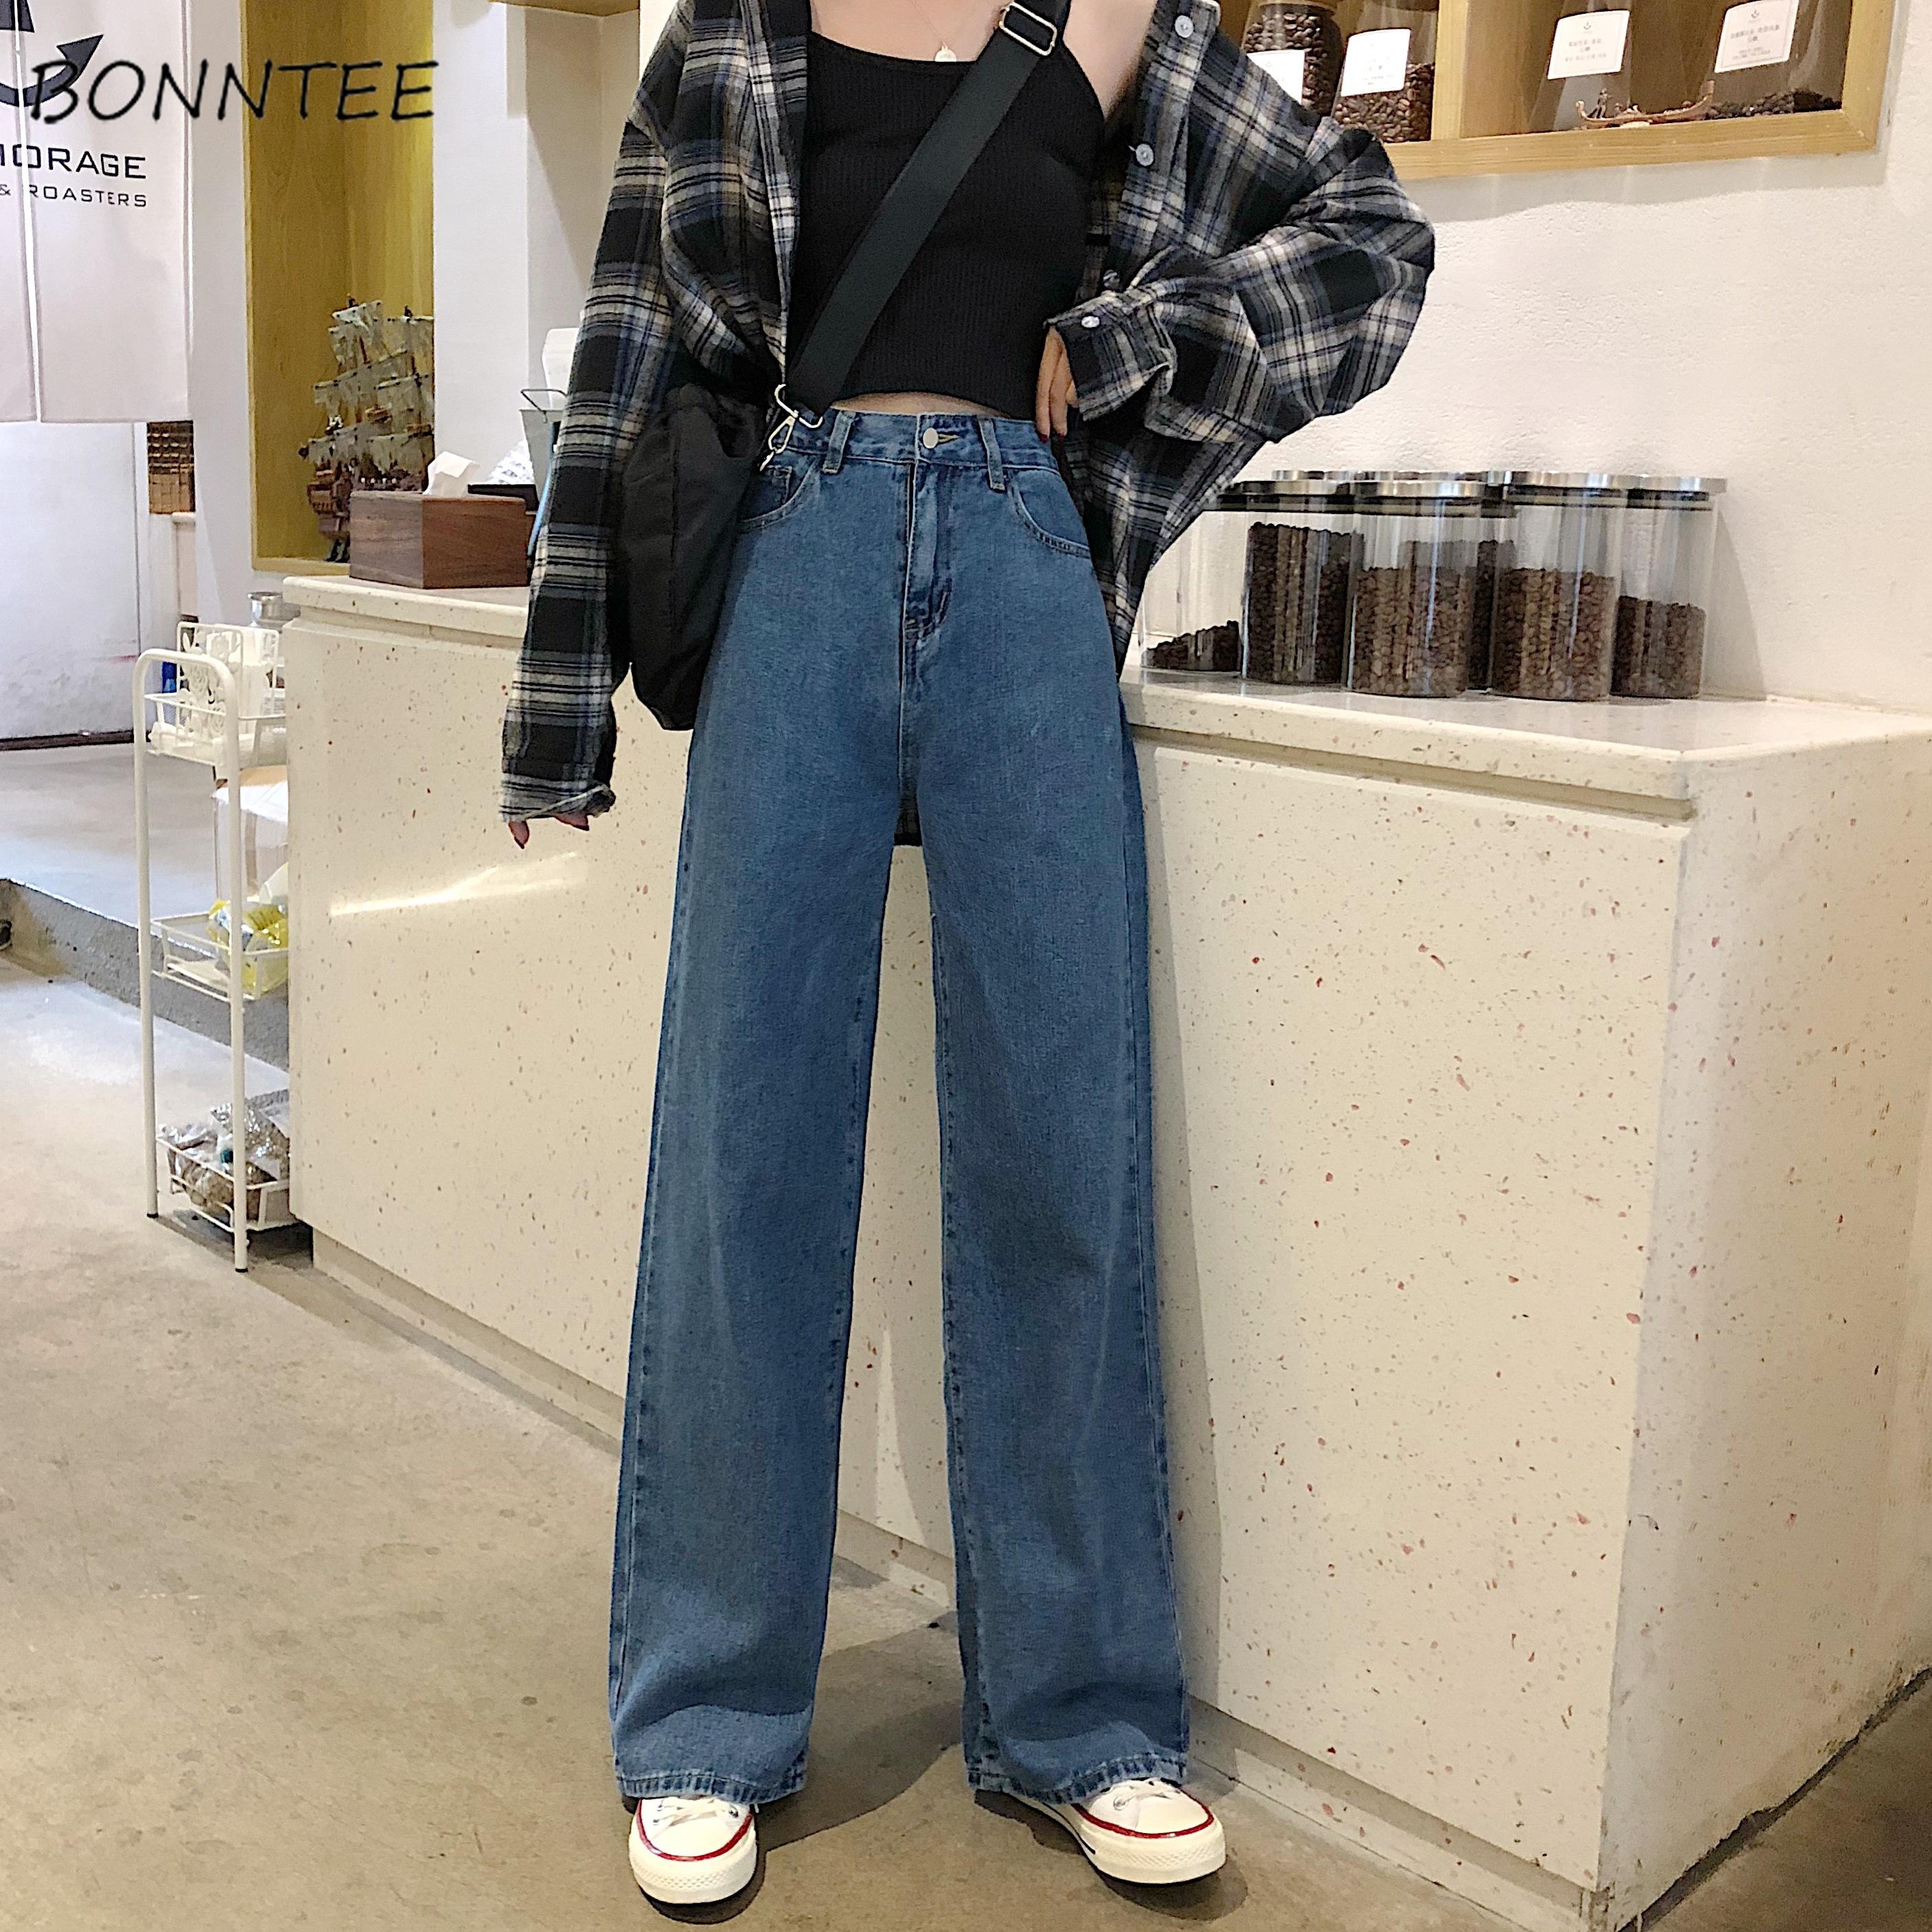 Jeans Women Denim Long Trousers Straight Korean Style Pockets Womens High Waist Casual Loose Students Streetwear Harajuku Chic